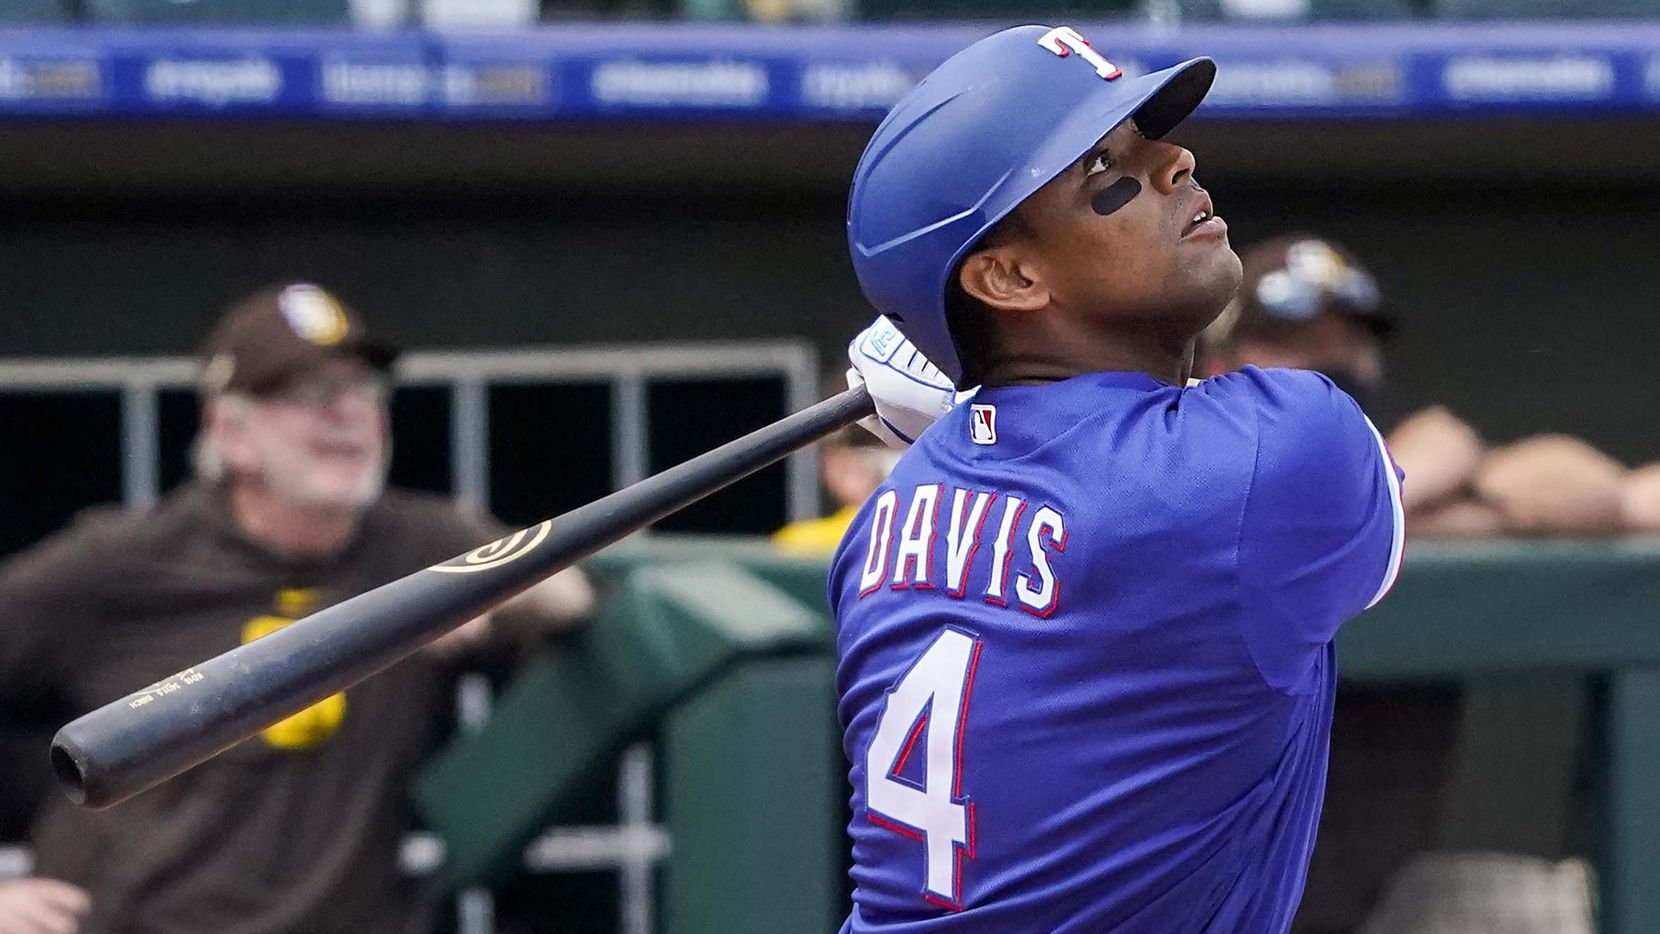 Texas Rangers designated hitter Khris Davis watches the ball as he flies out to right field during the first inning of a spring training game against the San Diego Padres at Surprise Stadium on Thursday, March 4, 2021, in Surprise, Ariz.